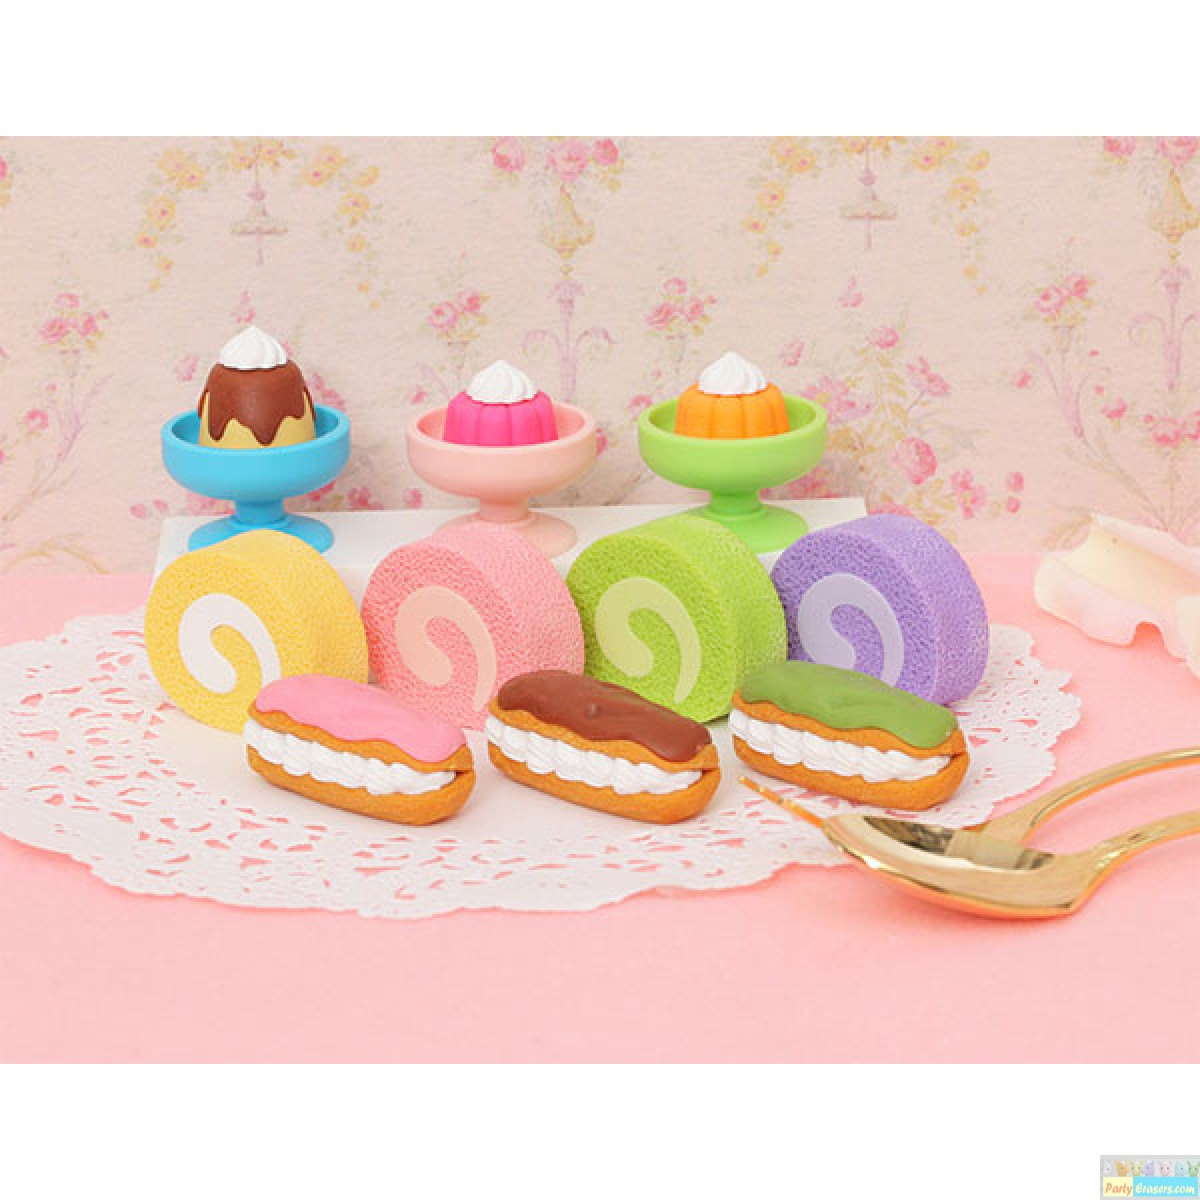 Sponge Cake clipart party food And and japanese pudding creammy